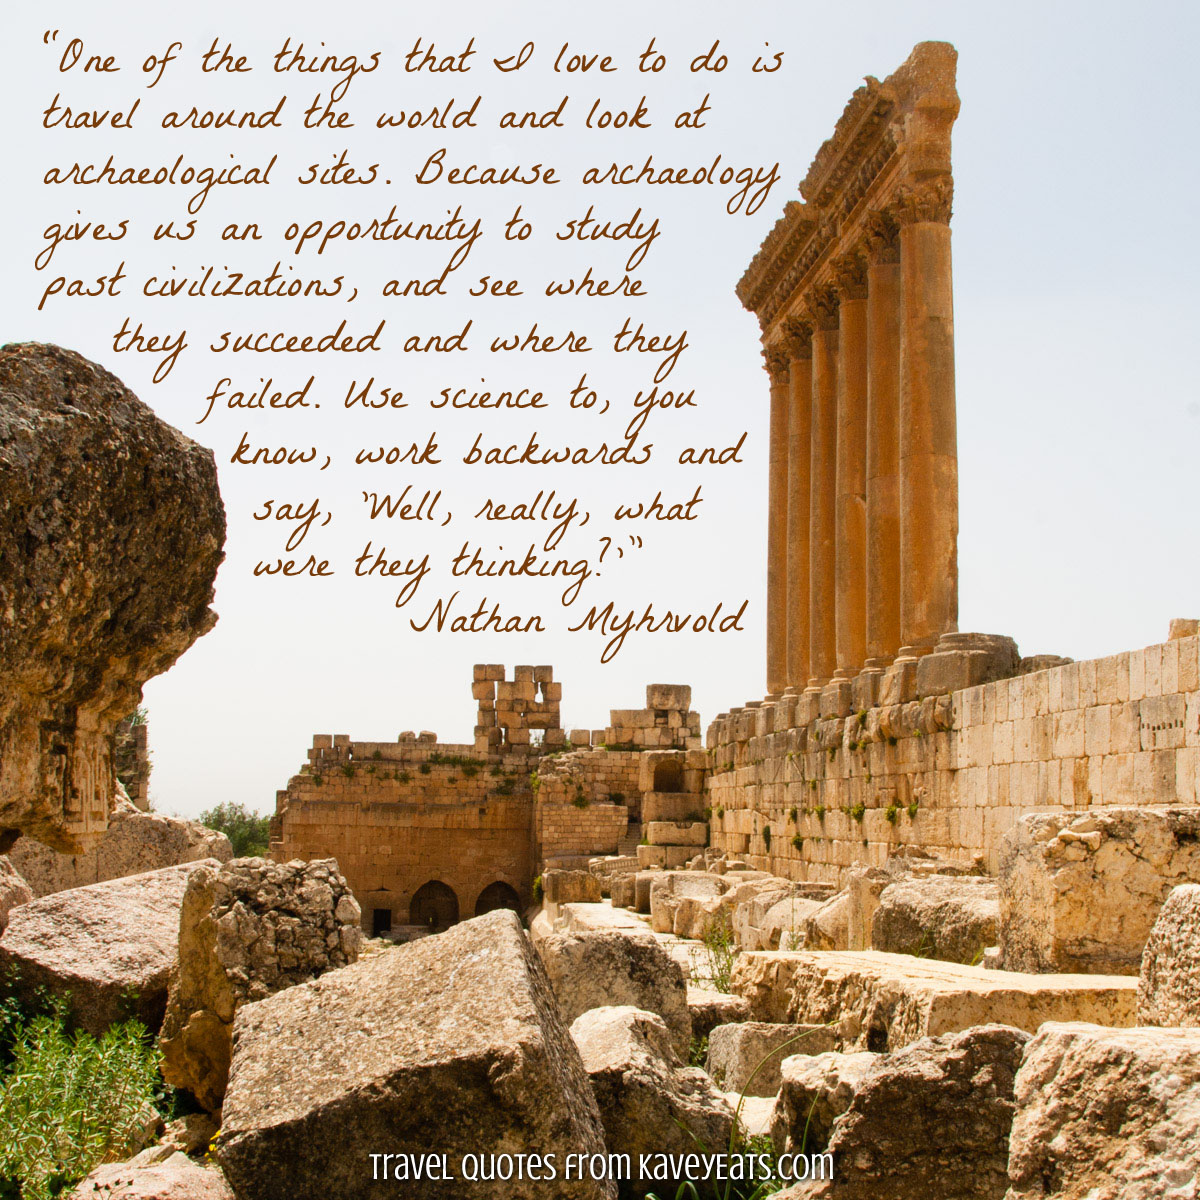 "The Temples of Baalbek in Lebanon: ""One of the things that I love to do is travel around the world and look at archaeological sites. Because archaeology gives us an opportunity to study past civilizations, and see where they succeeded and where they failed. Use science to, you know, work backwards and say, 'Well, really, what were they thinking?'"" Nathan Myhrvold"